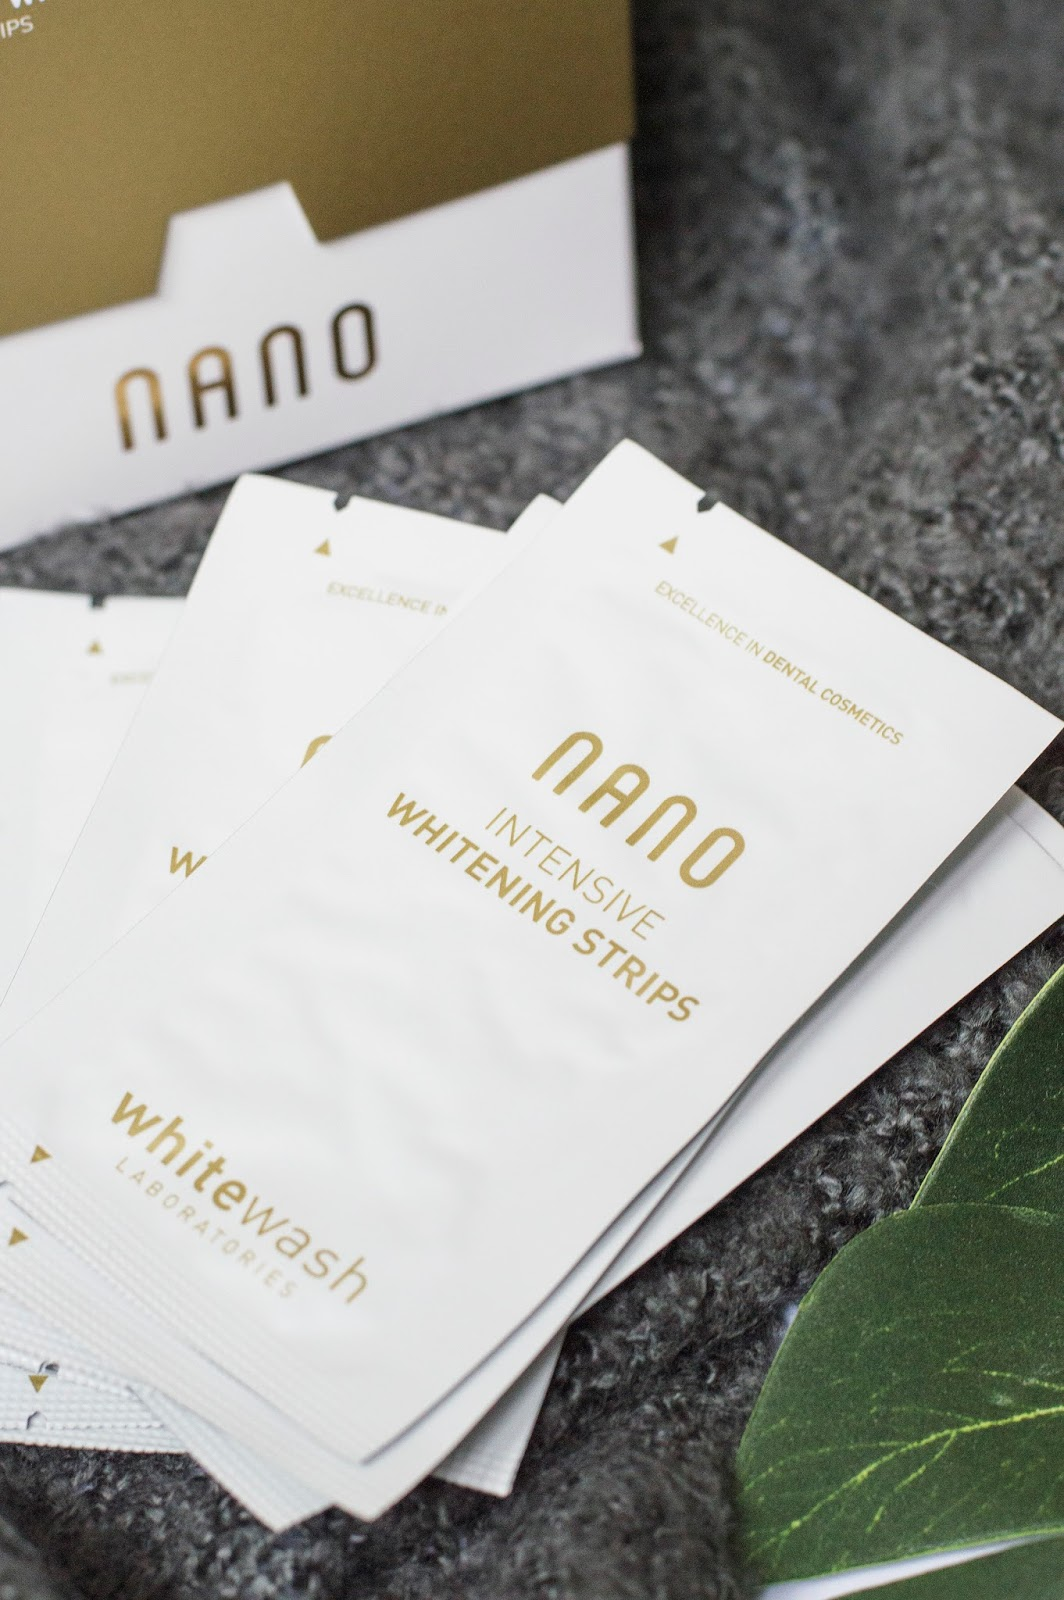 TEETH WHITENING WITH WHITE WASH LABS: NANO